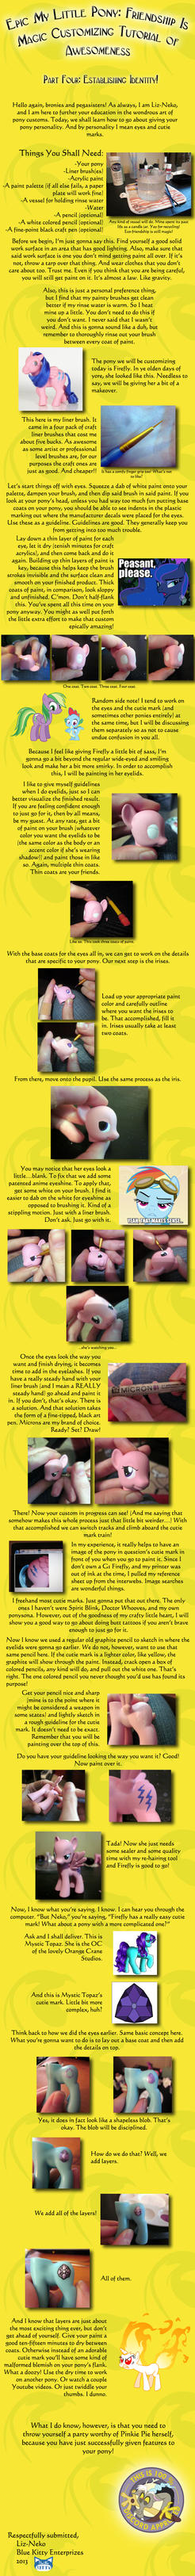 Epic MLP:FIM Customizing Tutorial Part 4 by liz-neko